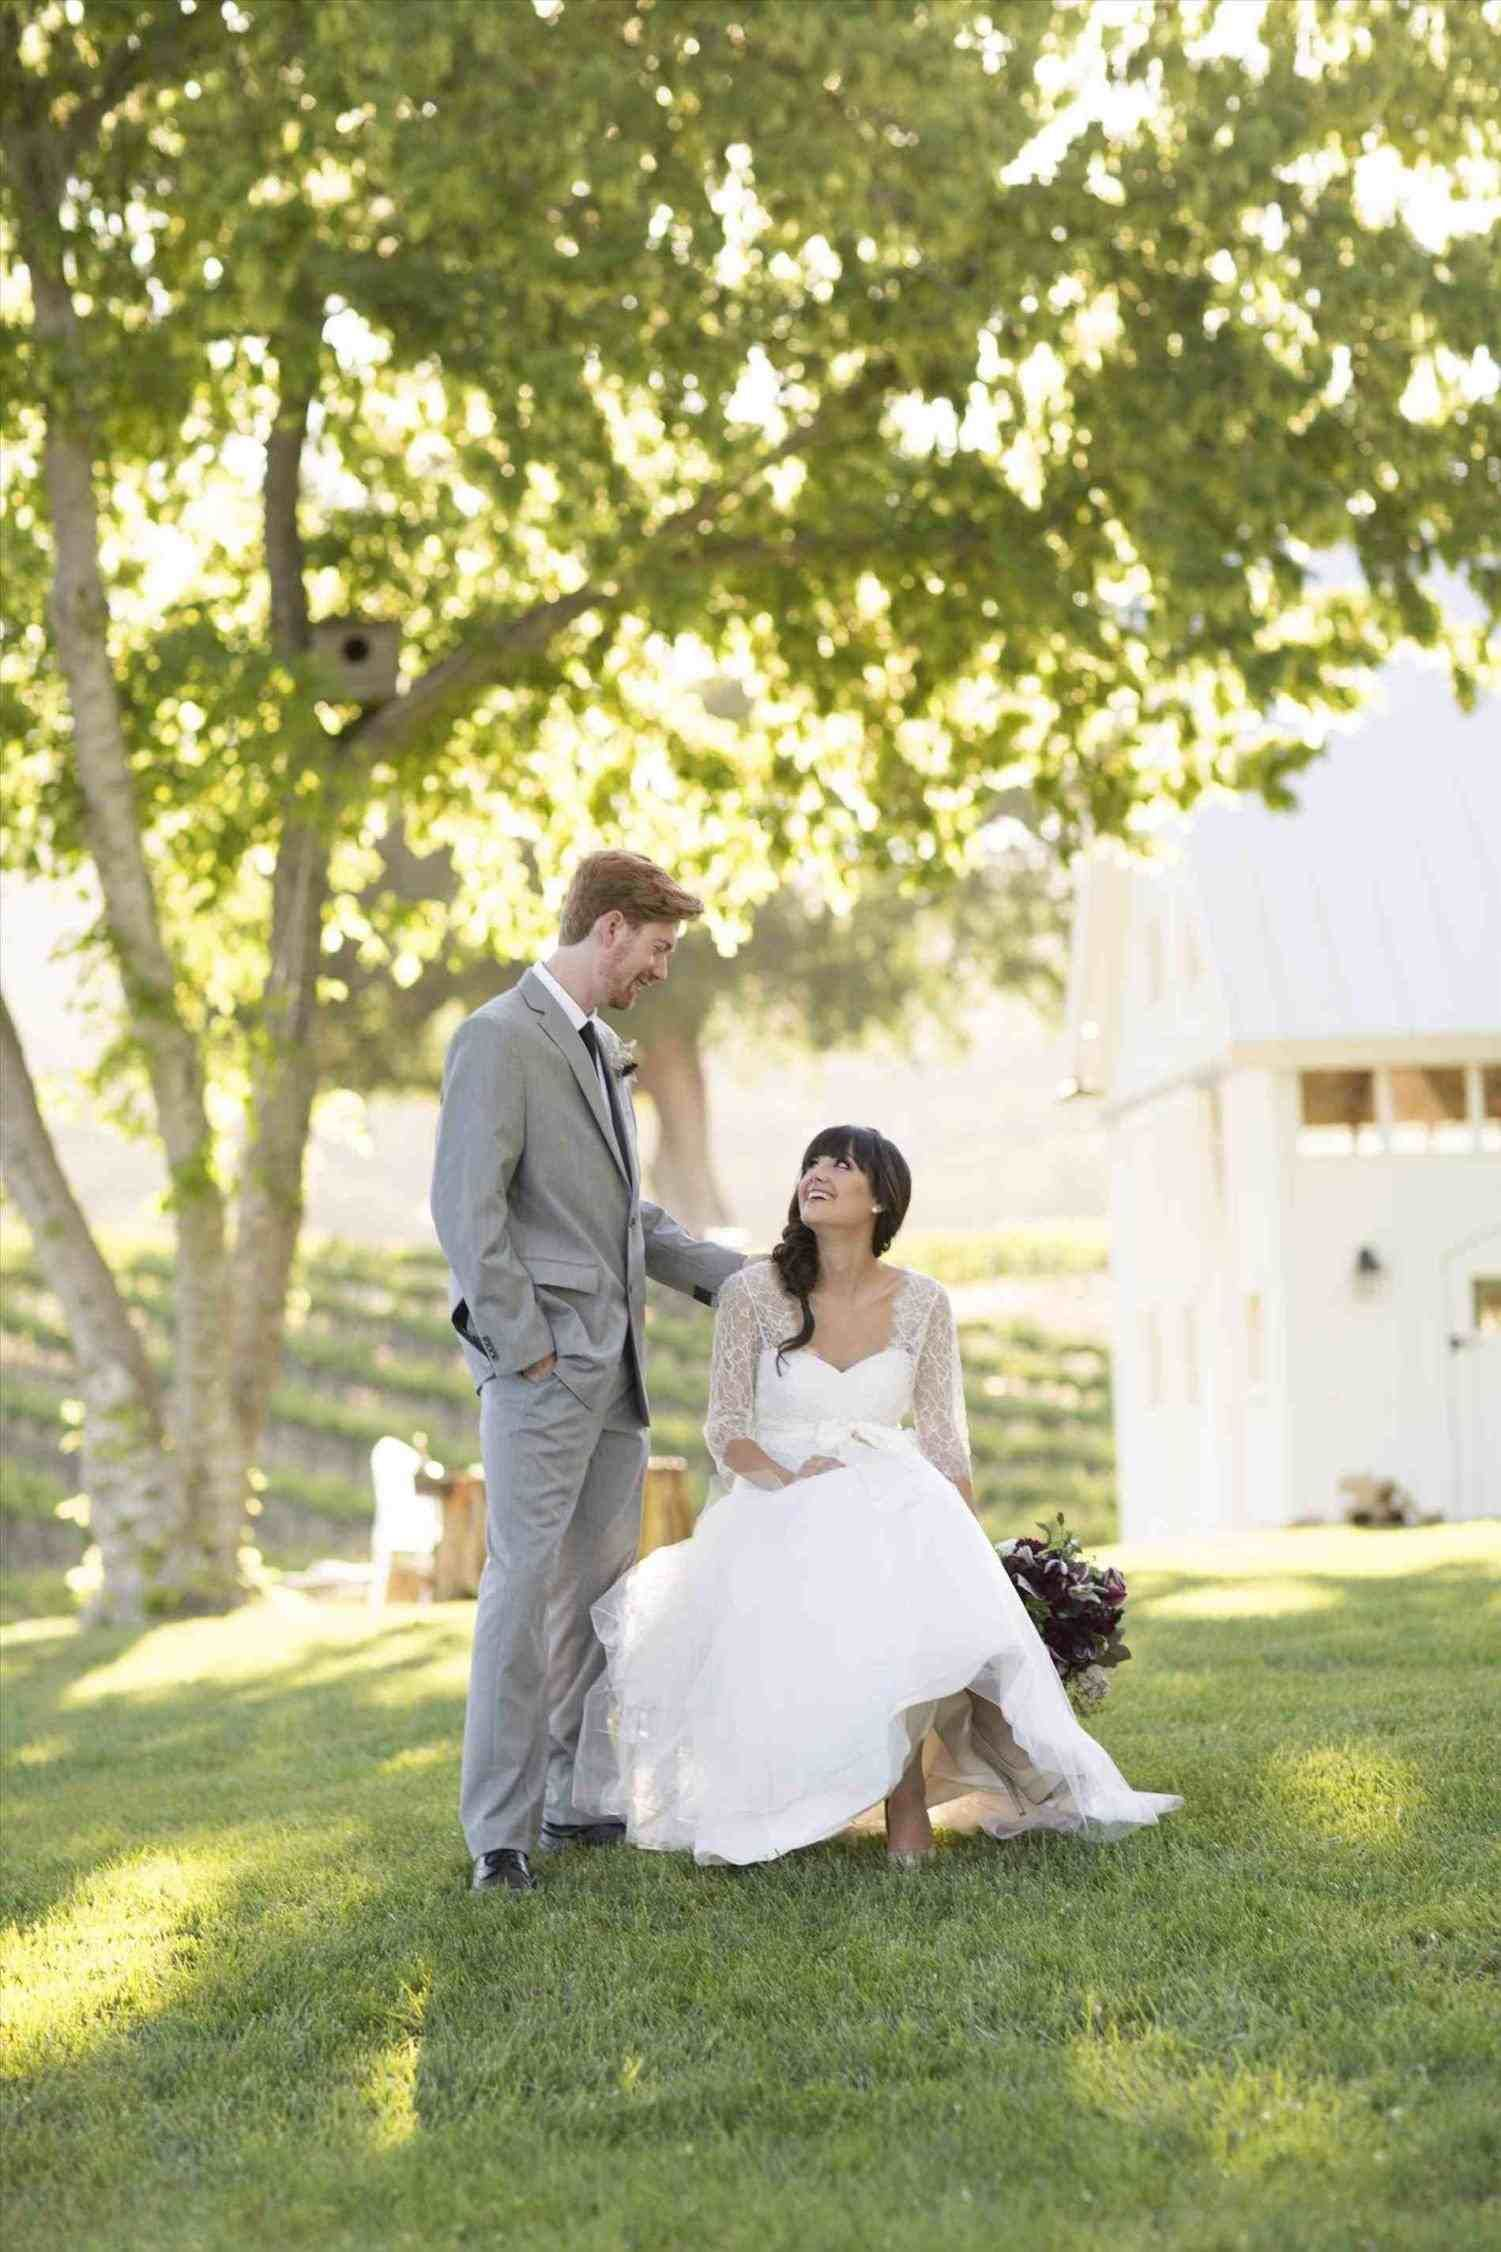 Country wedding ideas for groom weddings pinterest country